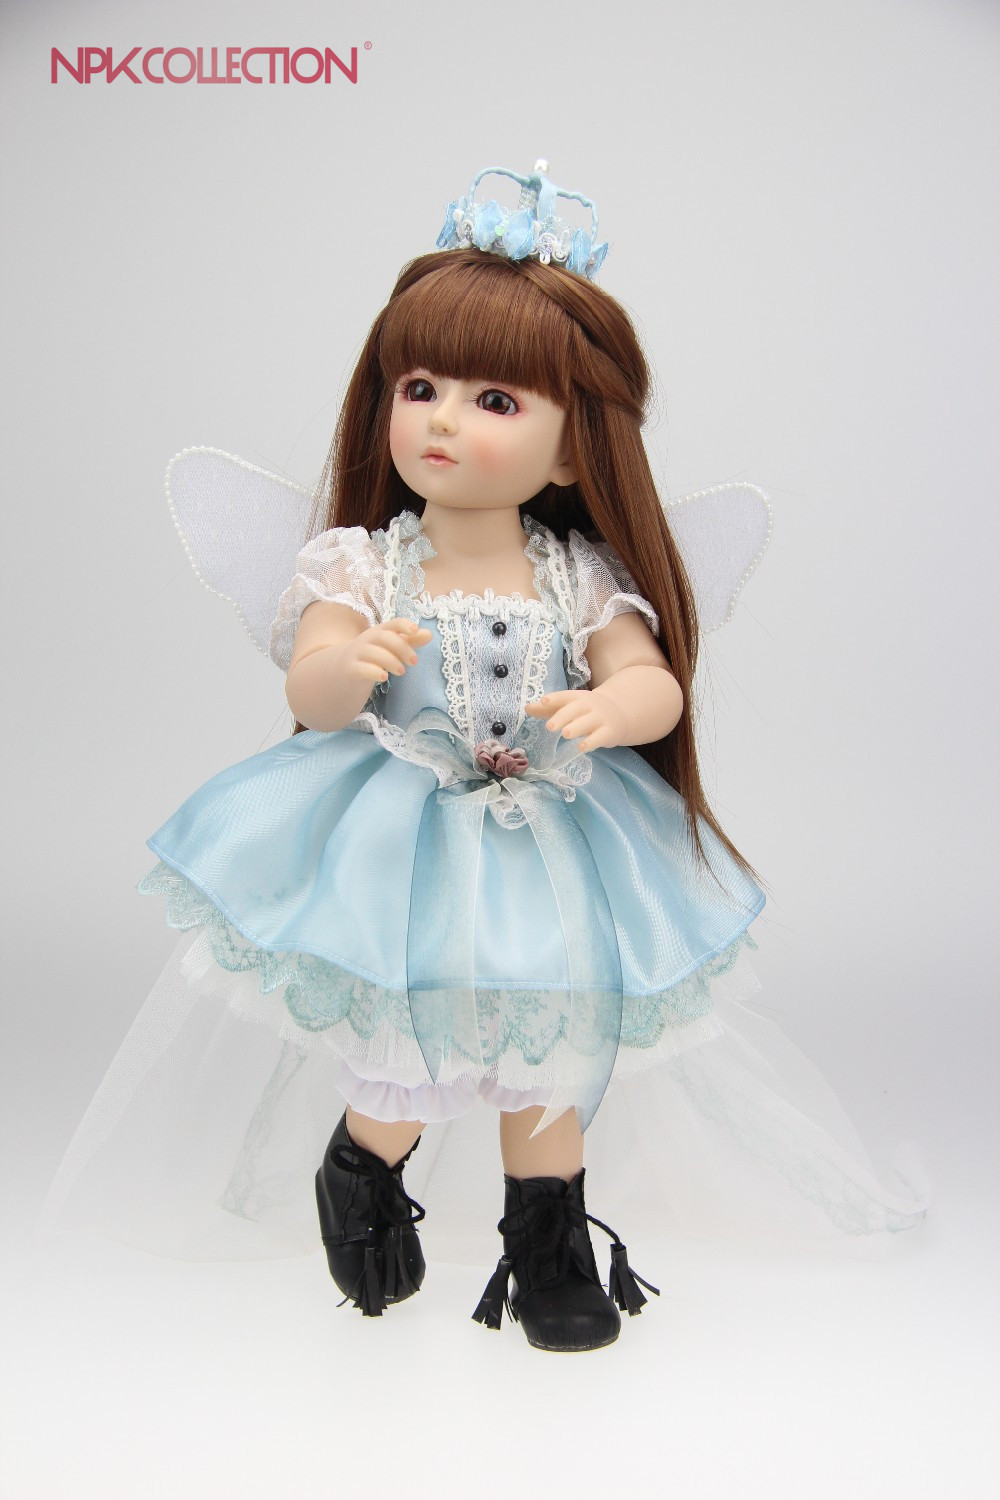 NPK 18 inch Beautiful SD/BJD doll high quality handmade doll poseable with joints кабель ввгнг п ls 2х1 5 рэмз 20м гост 17846